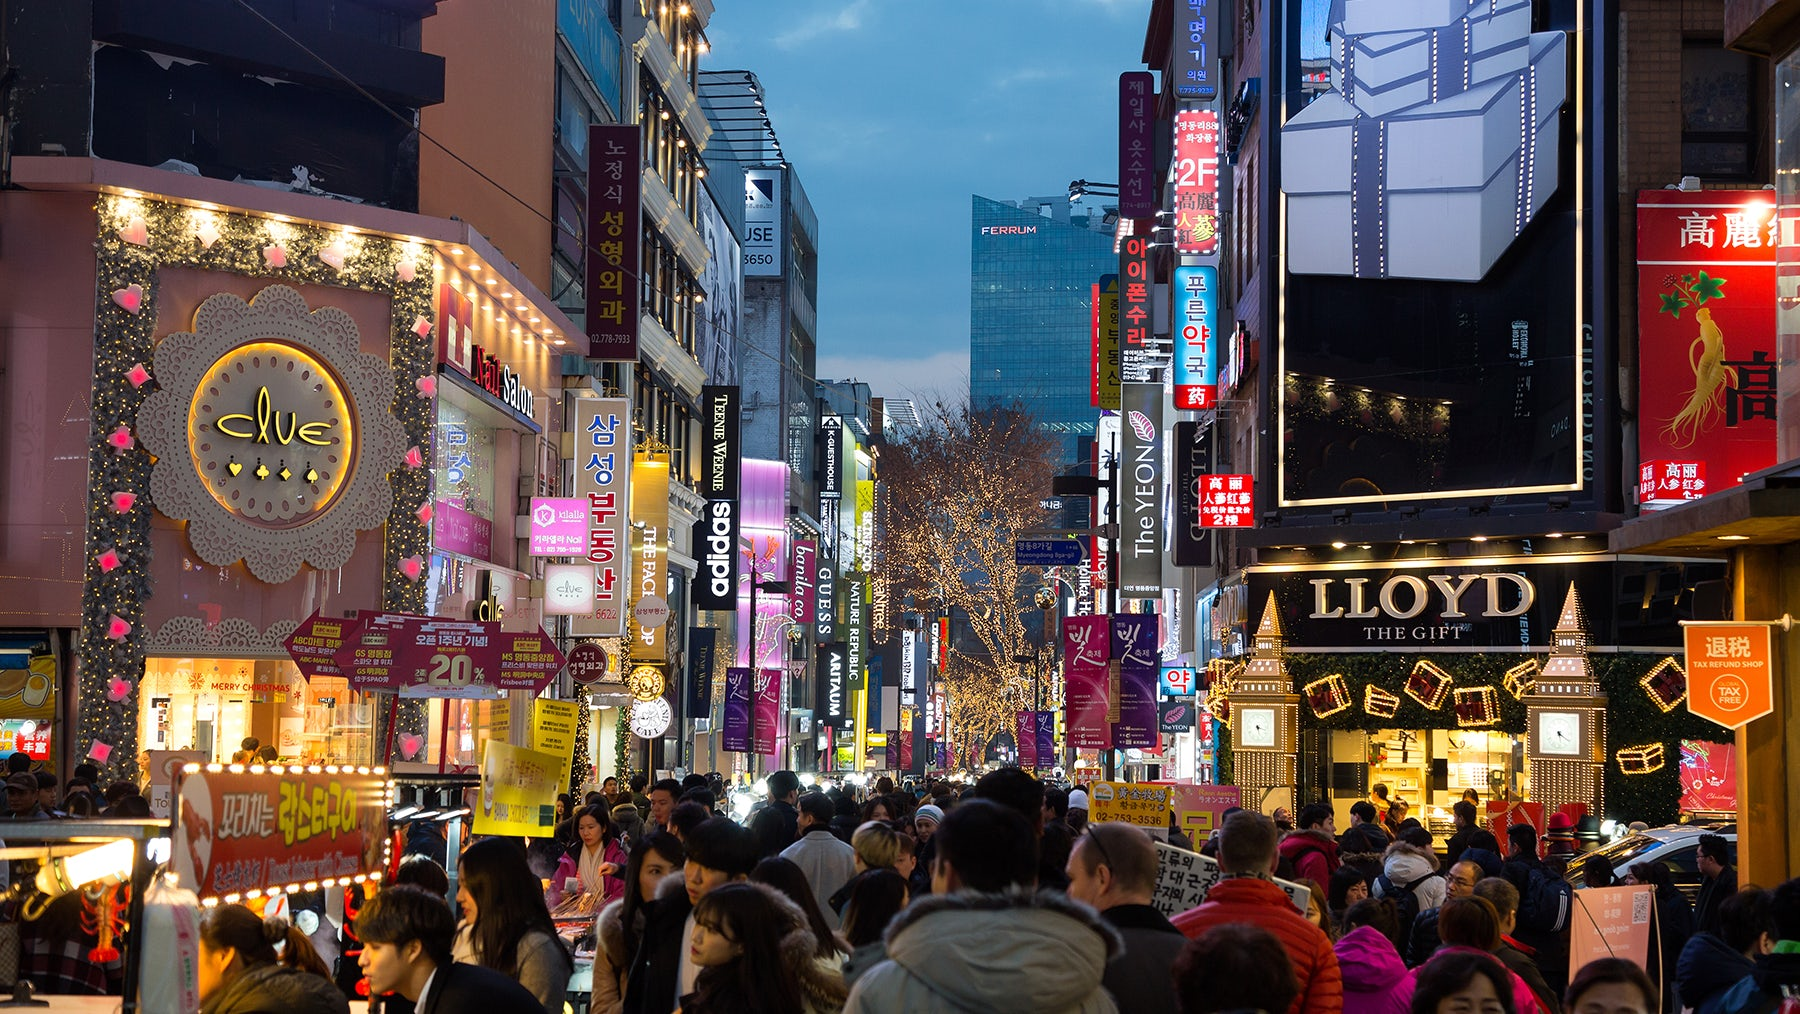 Myeongdong shopping street in Seoul | Source: Shutterstock